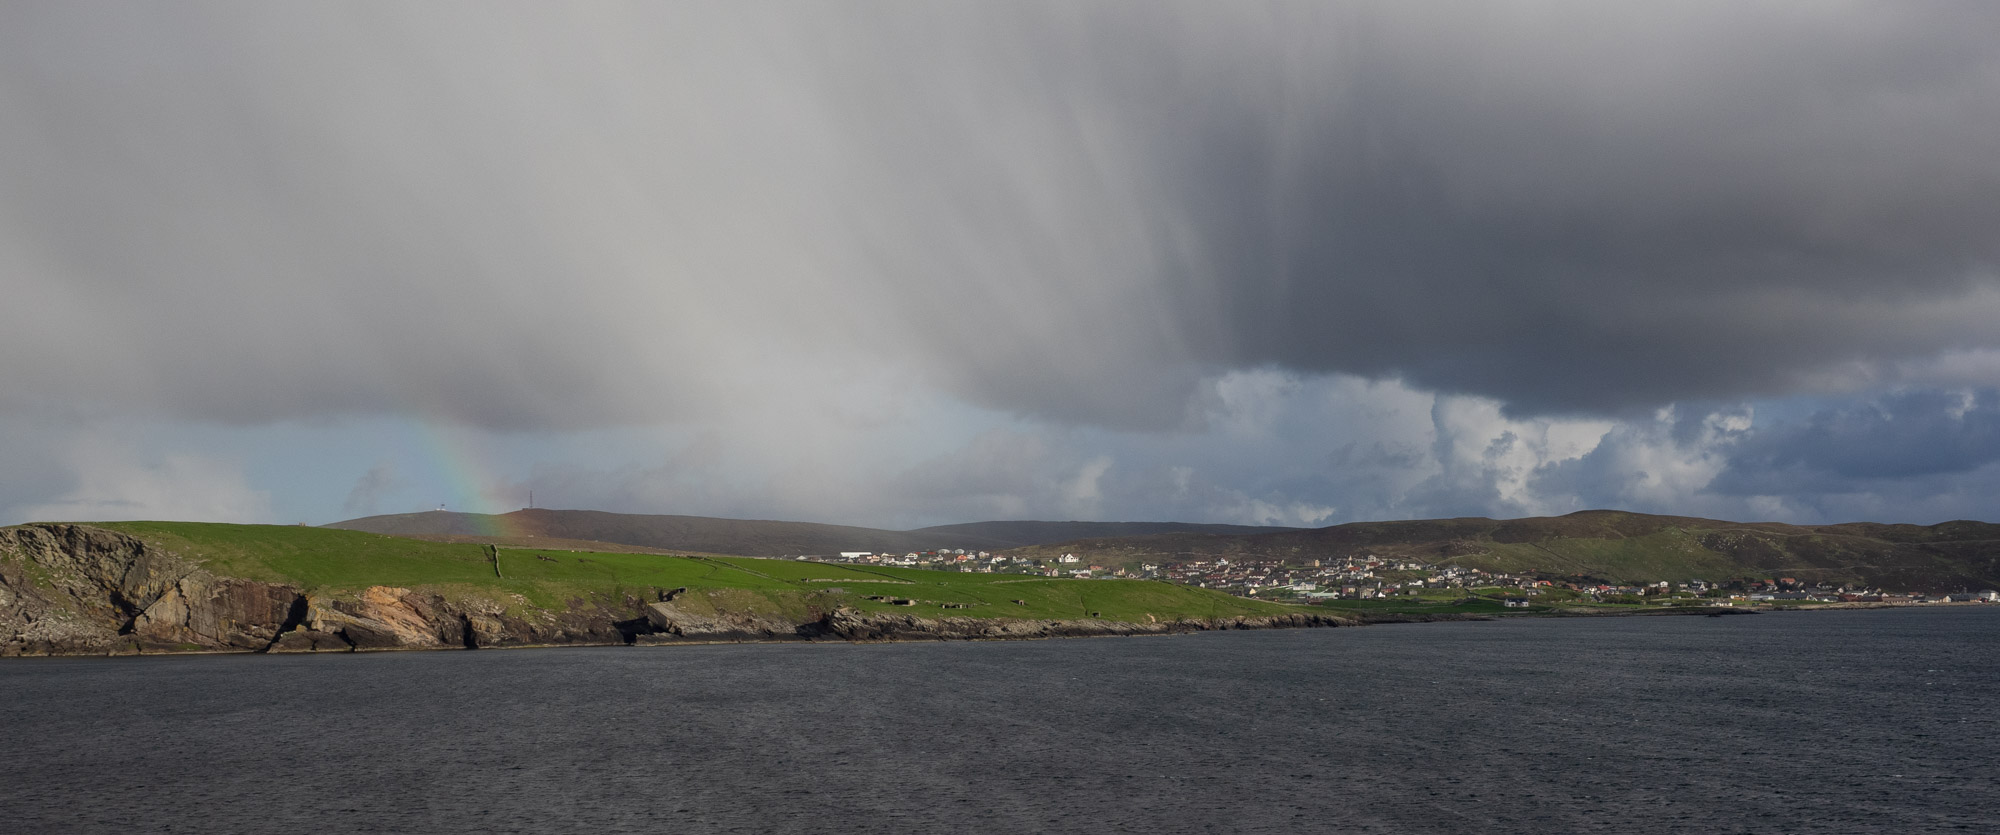 Arriving in Lerwick on the overnight ferry from Aberdeen. 7am, chilly, rain showers, and a spectacular skyscape.